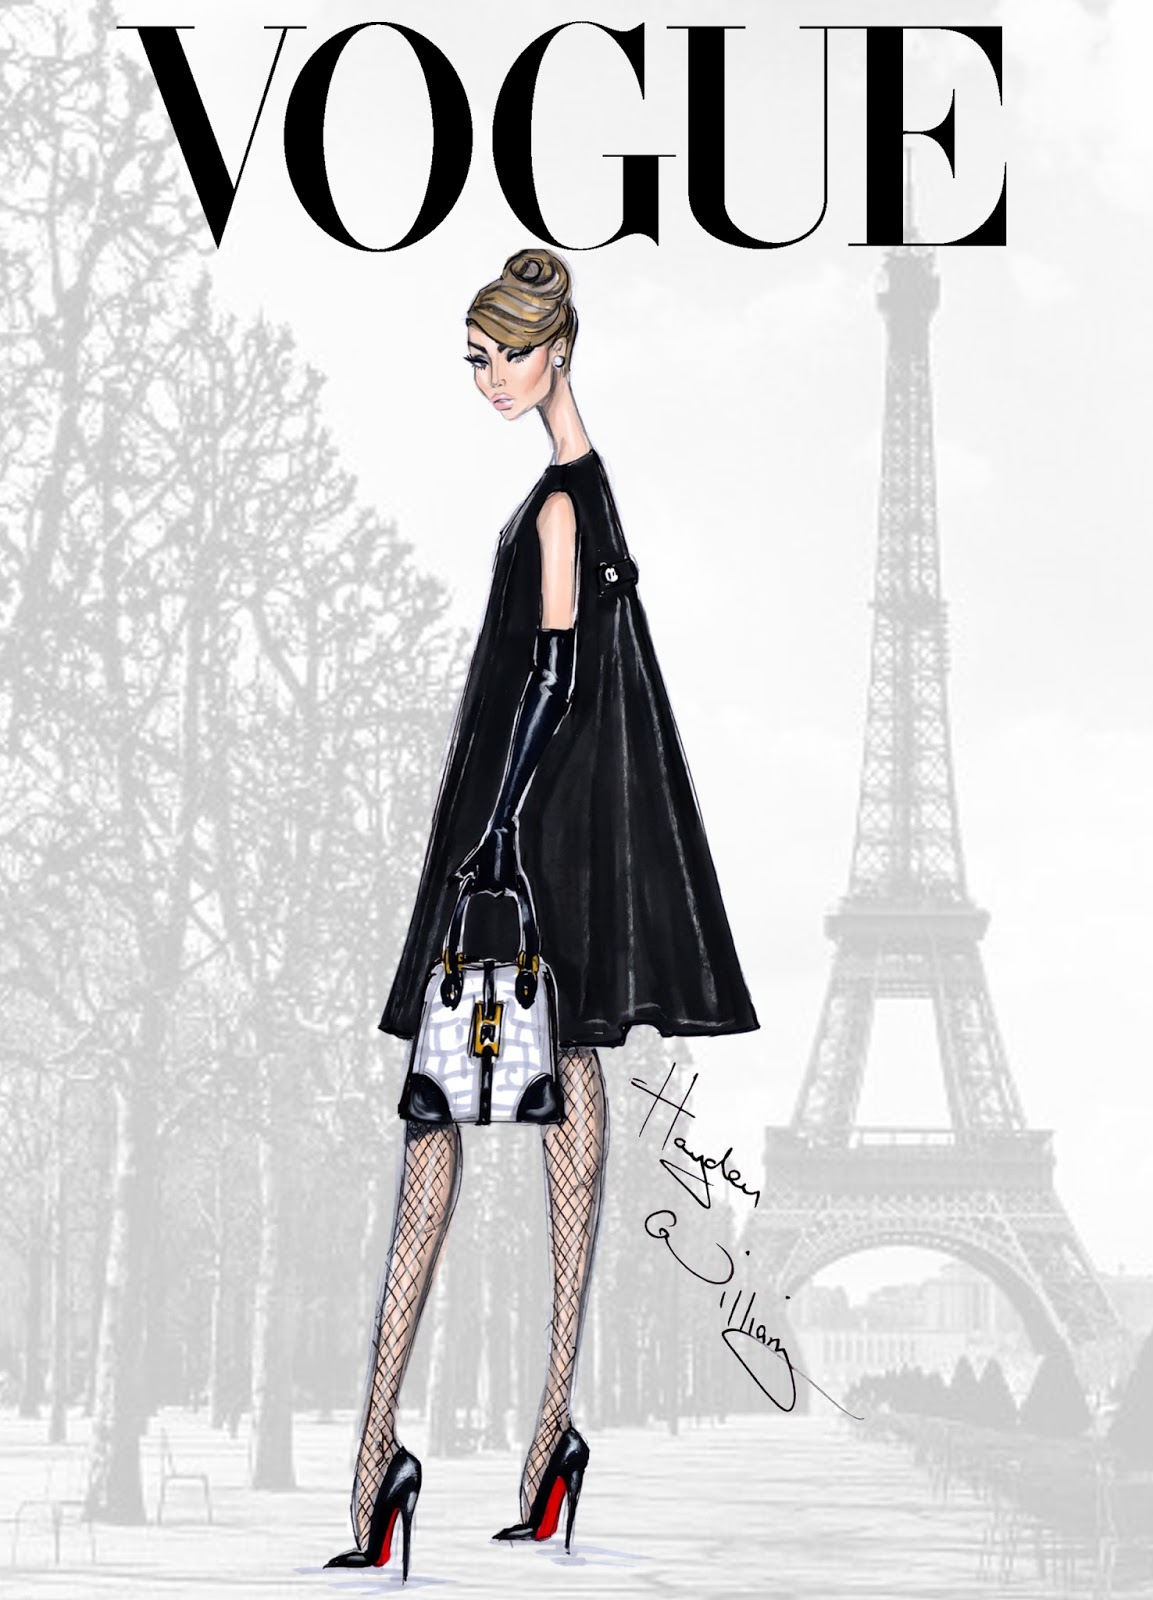 vogue 39 fashion illustrations by hayden williams a side of vogue